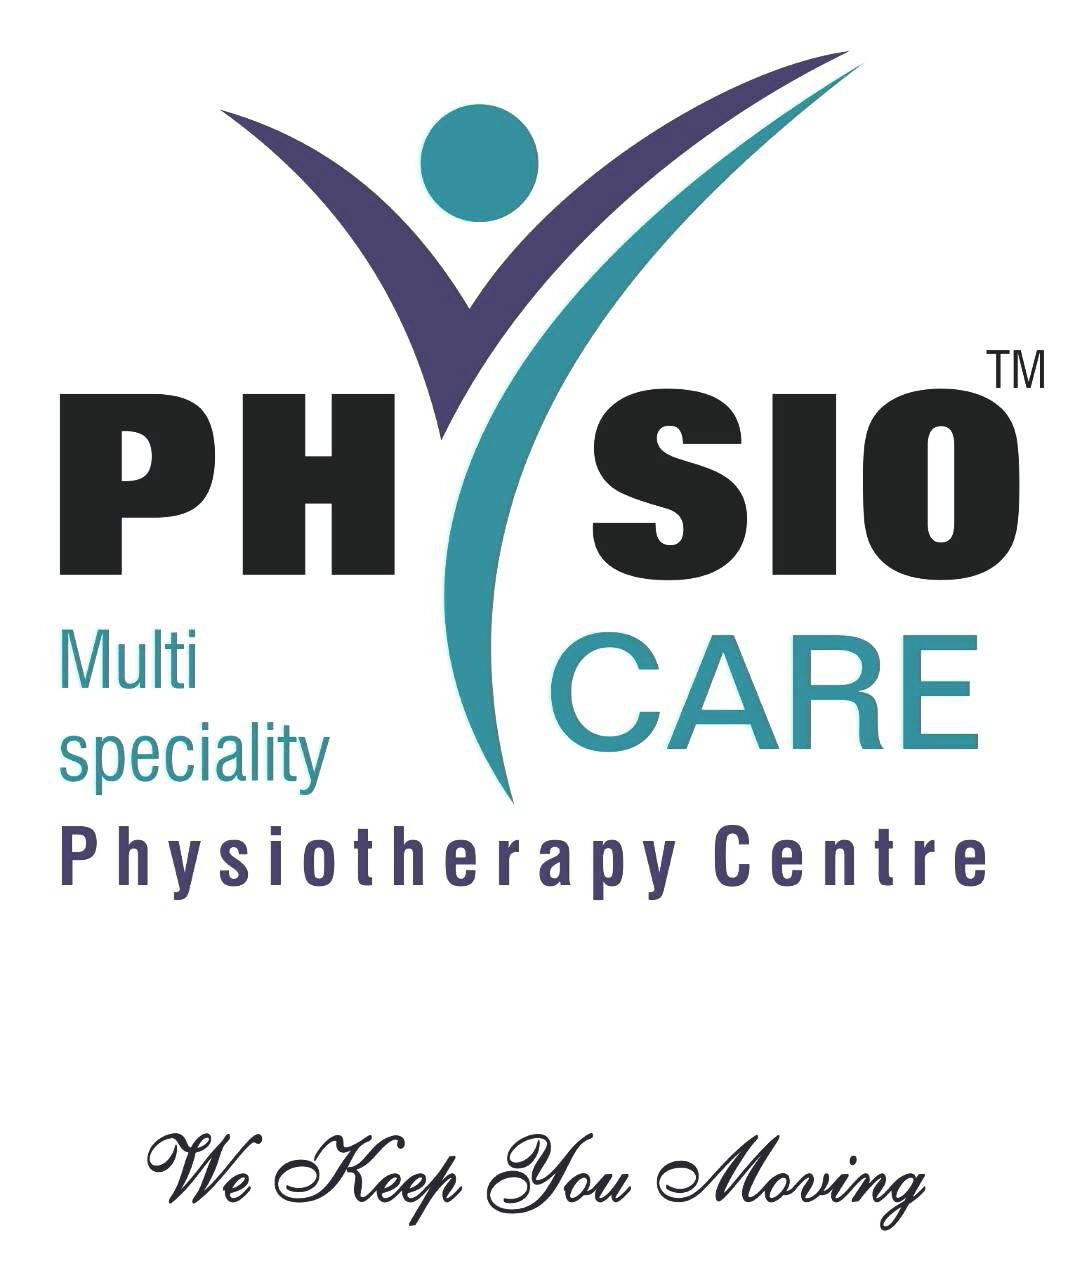 Physiocare Multi Speciality Physiotherapy Centre